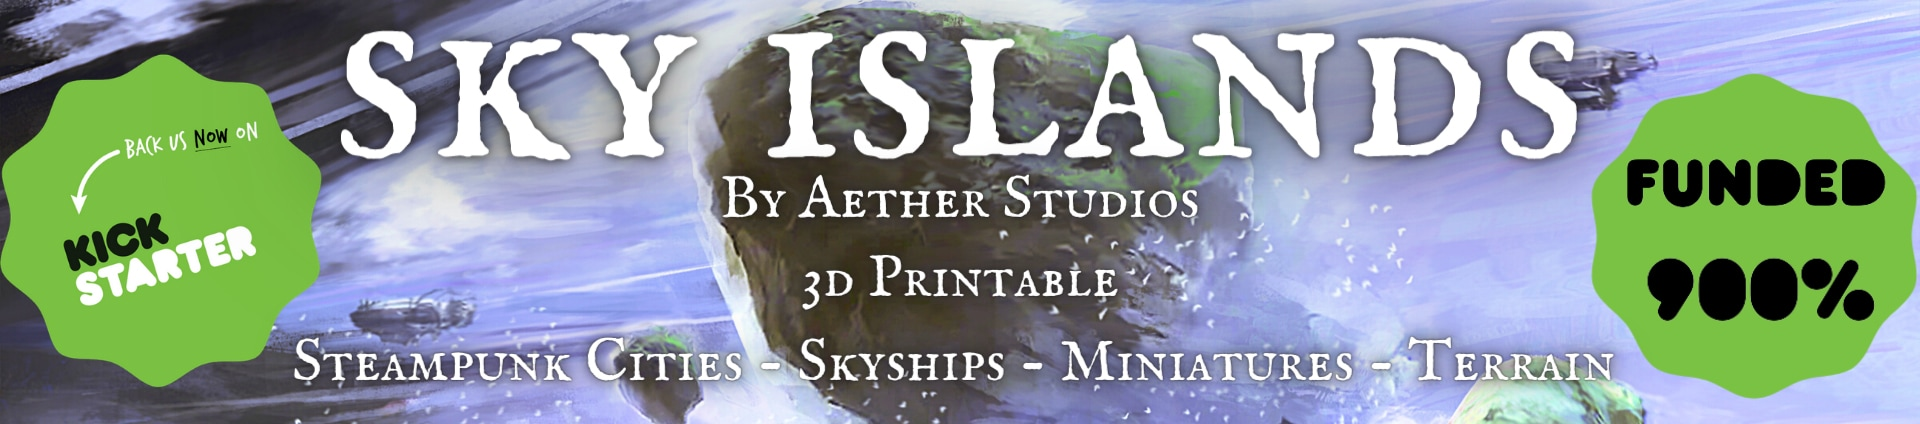 Aether Studios Kickstarter: Sky Islands